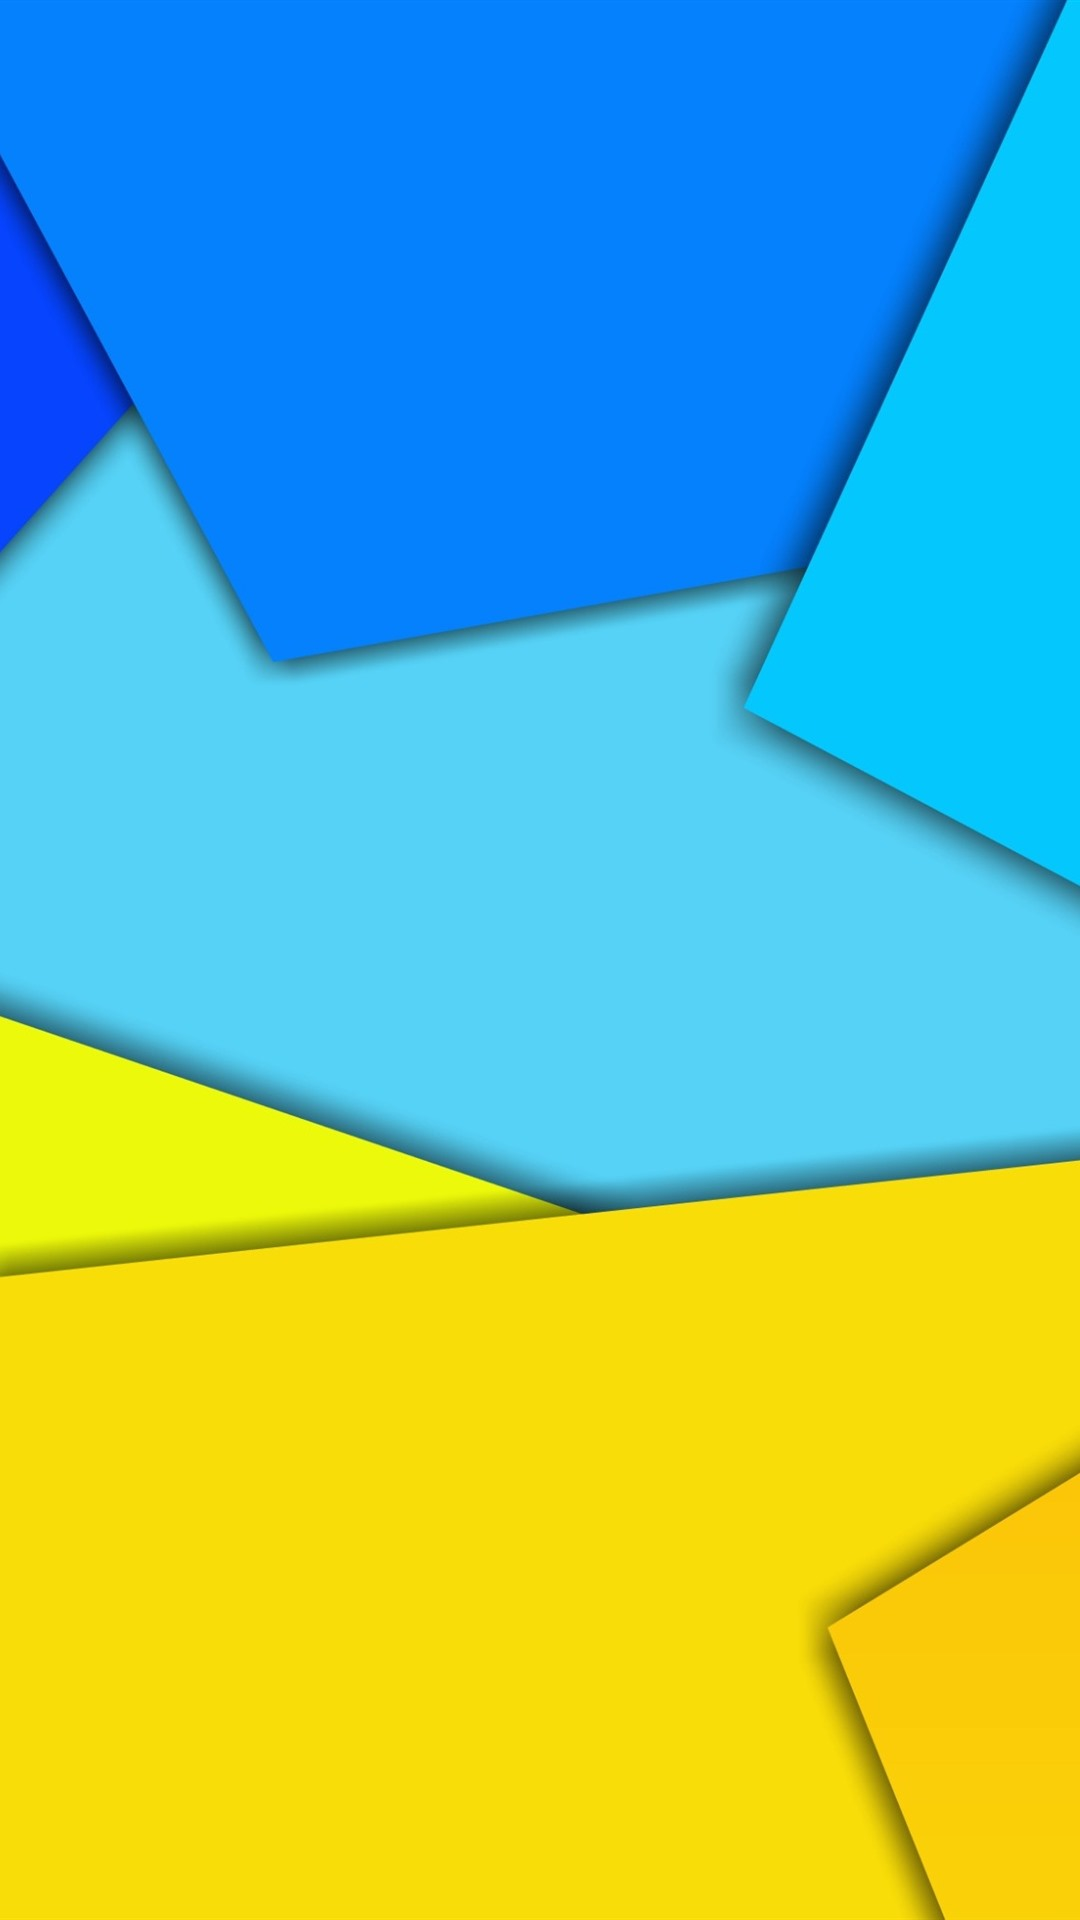 Yellow And Blue Geometric Figure Abstract Picture 1080x1920